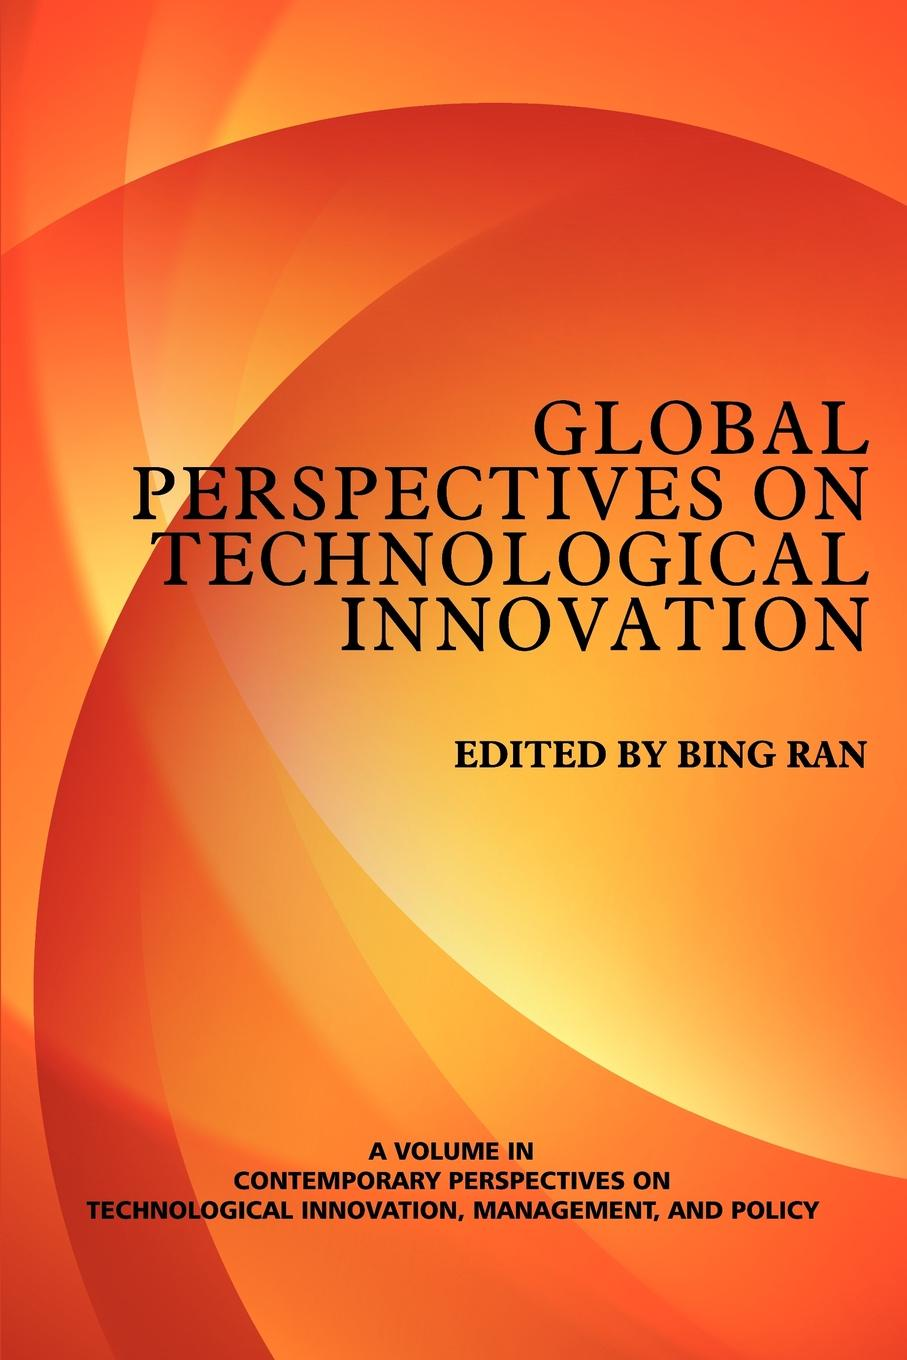 Global Perspectives on Technological Innovation boris shulitski the ideological foundations of technological singularity